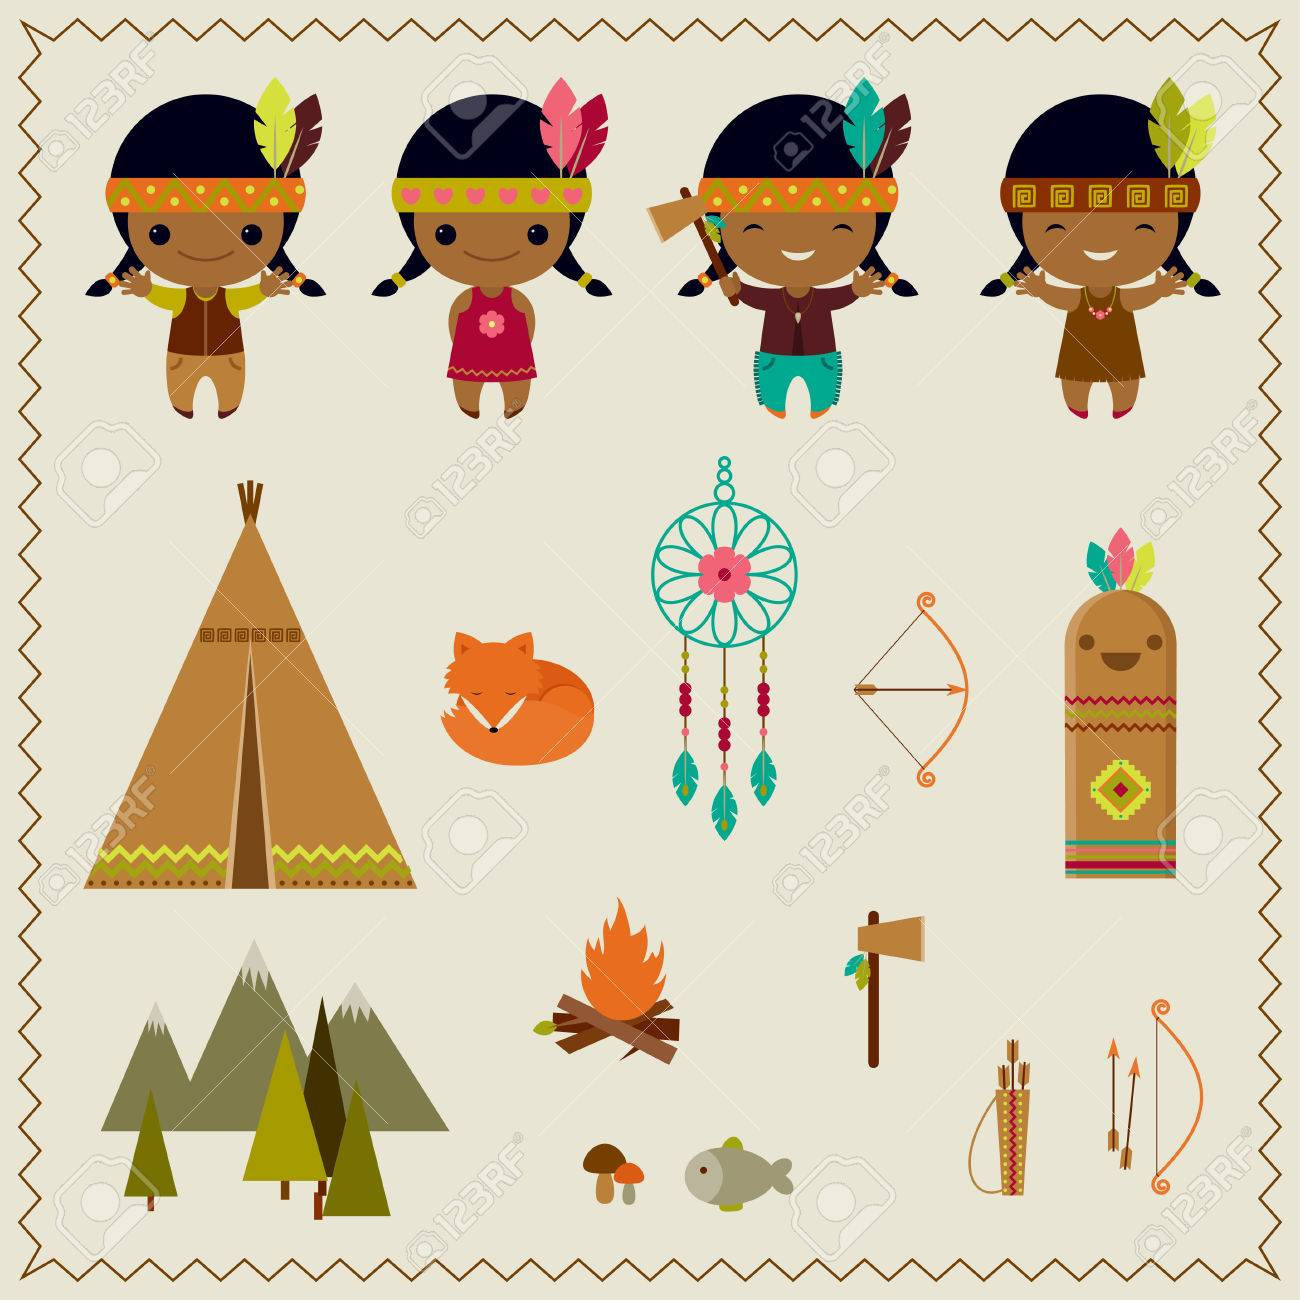 hight resolution of american indian clipart icons design stock vector 27945537